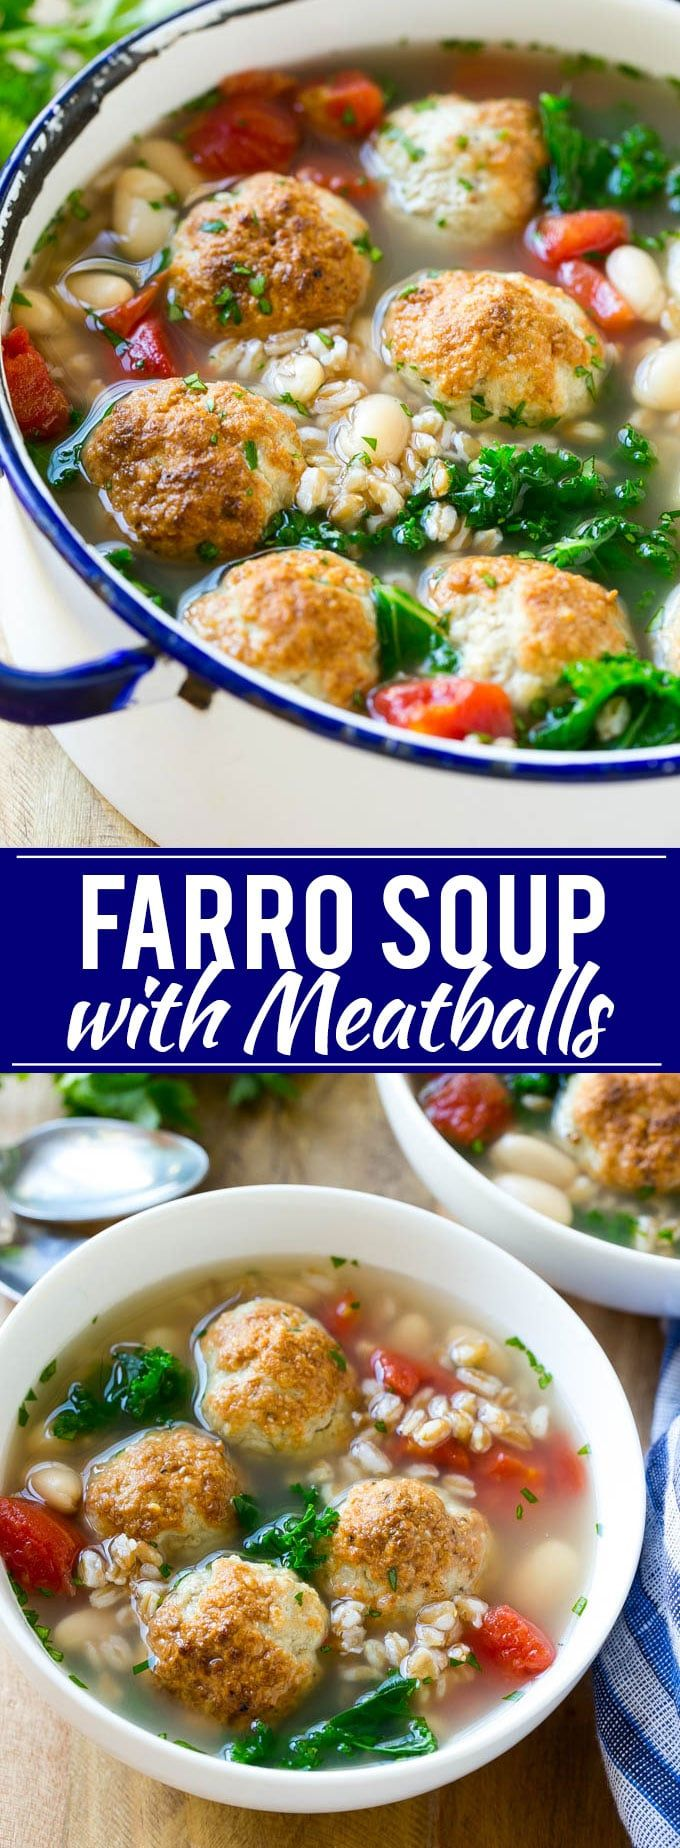 Farro Soup with Meatballs Recipe, made with @villageharvest Farro AD